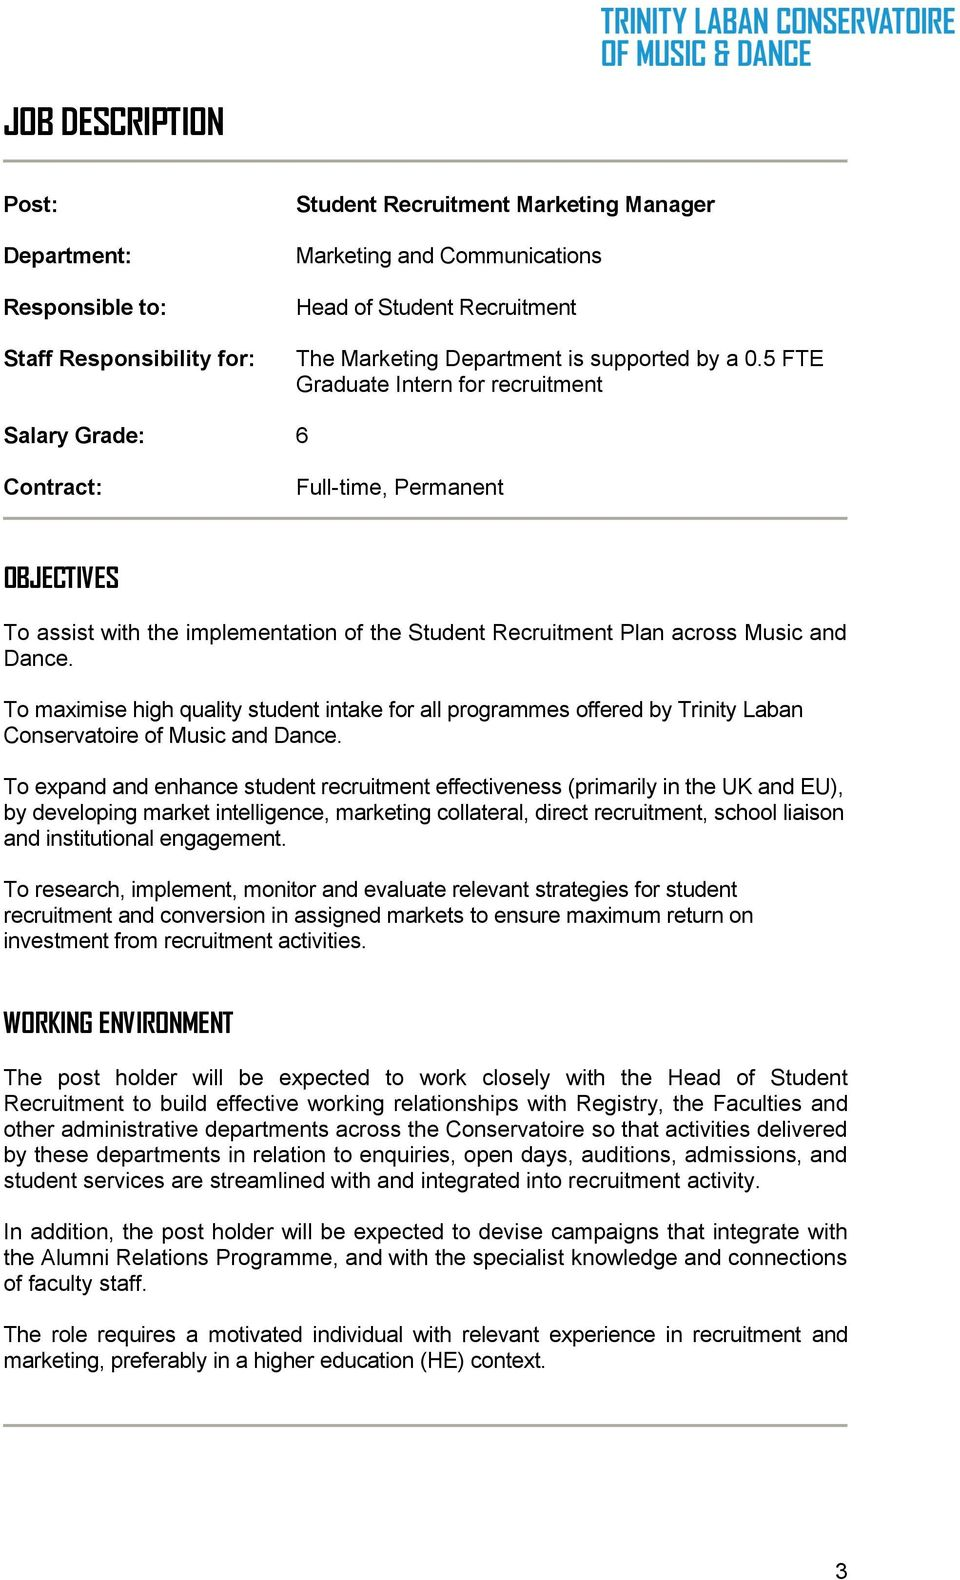 5 FTE Graduate Intern for recruitment Salary Grade: 6 Contract: Full-time, Permanent OBJECTIVES To assist with the implementation of the Student Recruitment Plan across Music and Dance.